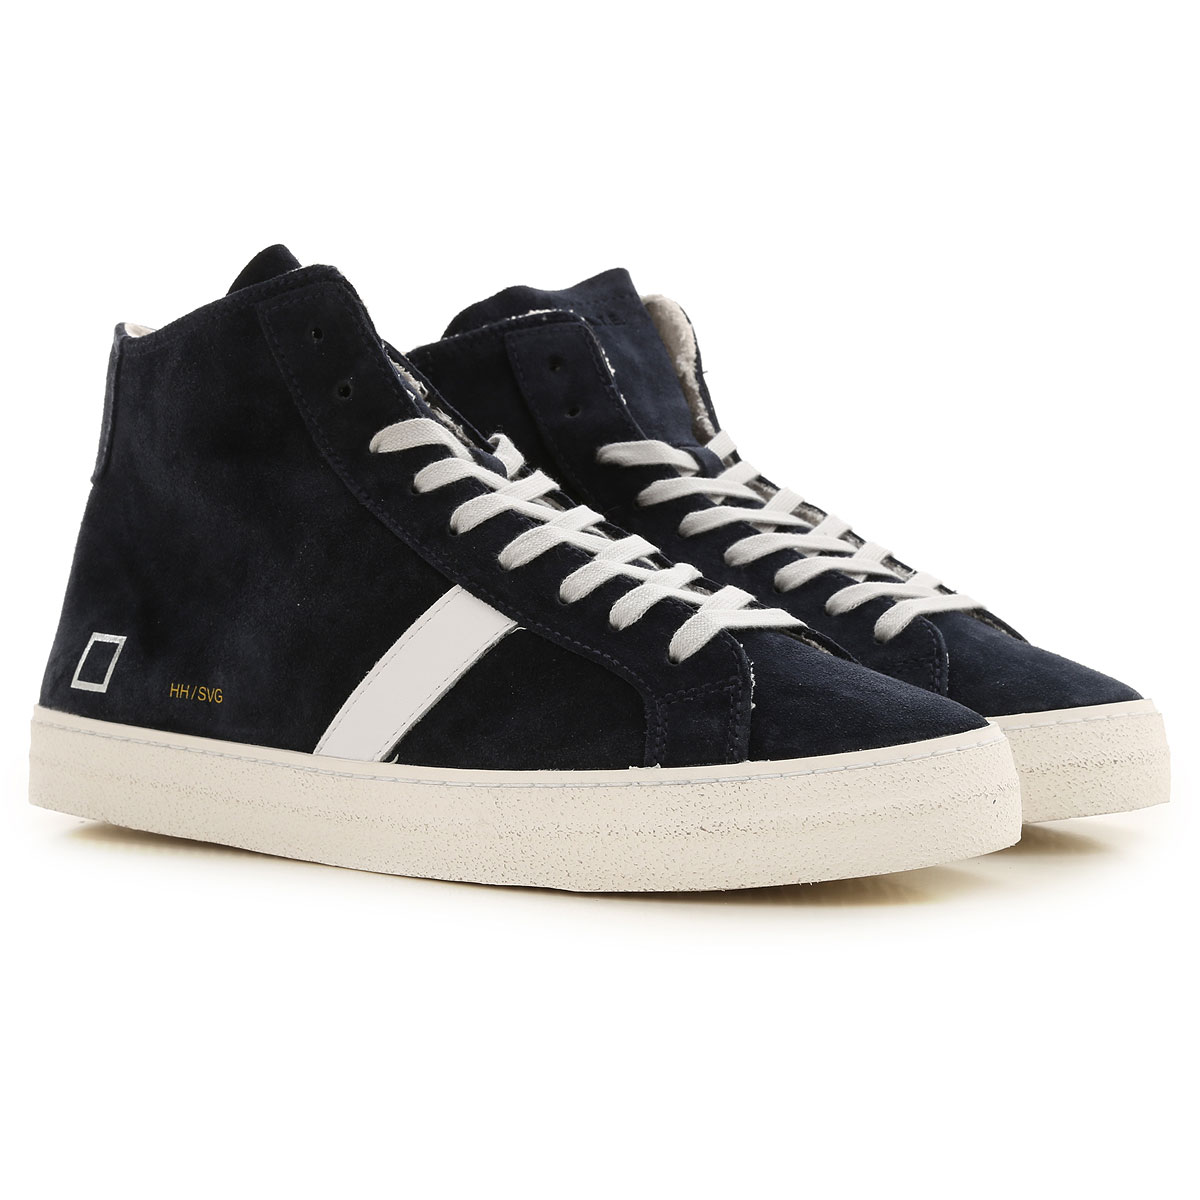 D.A.T.E. Sneakers for Men, Black, Suede leather, 2019, US 9 - EU 42 - UK 8 - JP 27 US 10 - EU 43 - UK 9 - JP 27.5 US 11 - EU 44 - UK 10 - JP 28 US 12